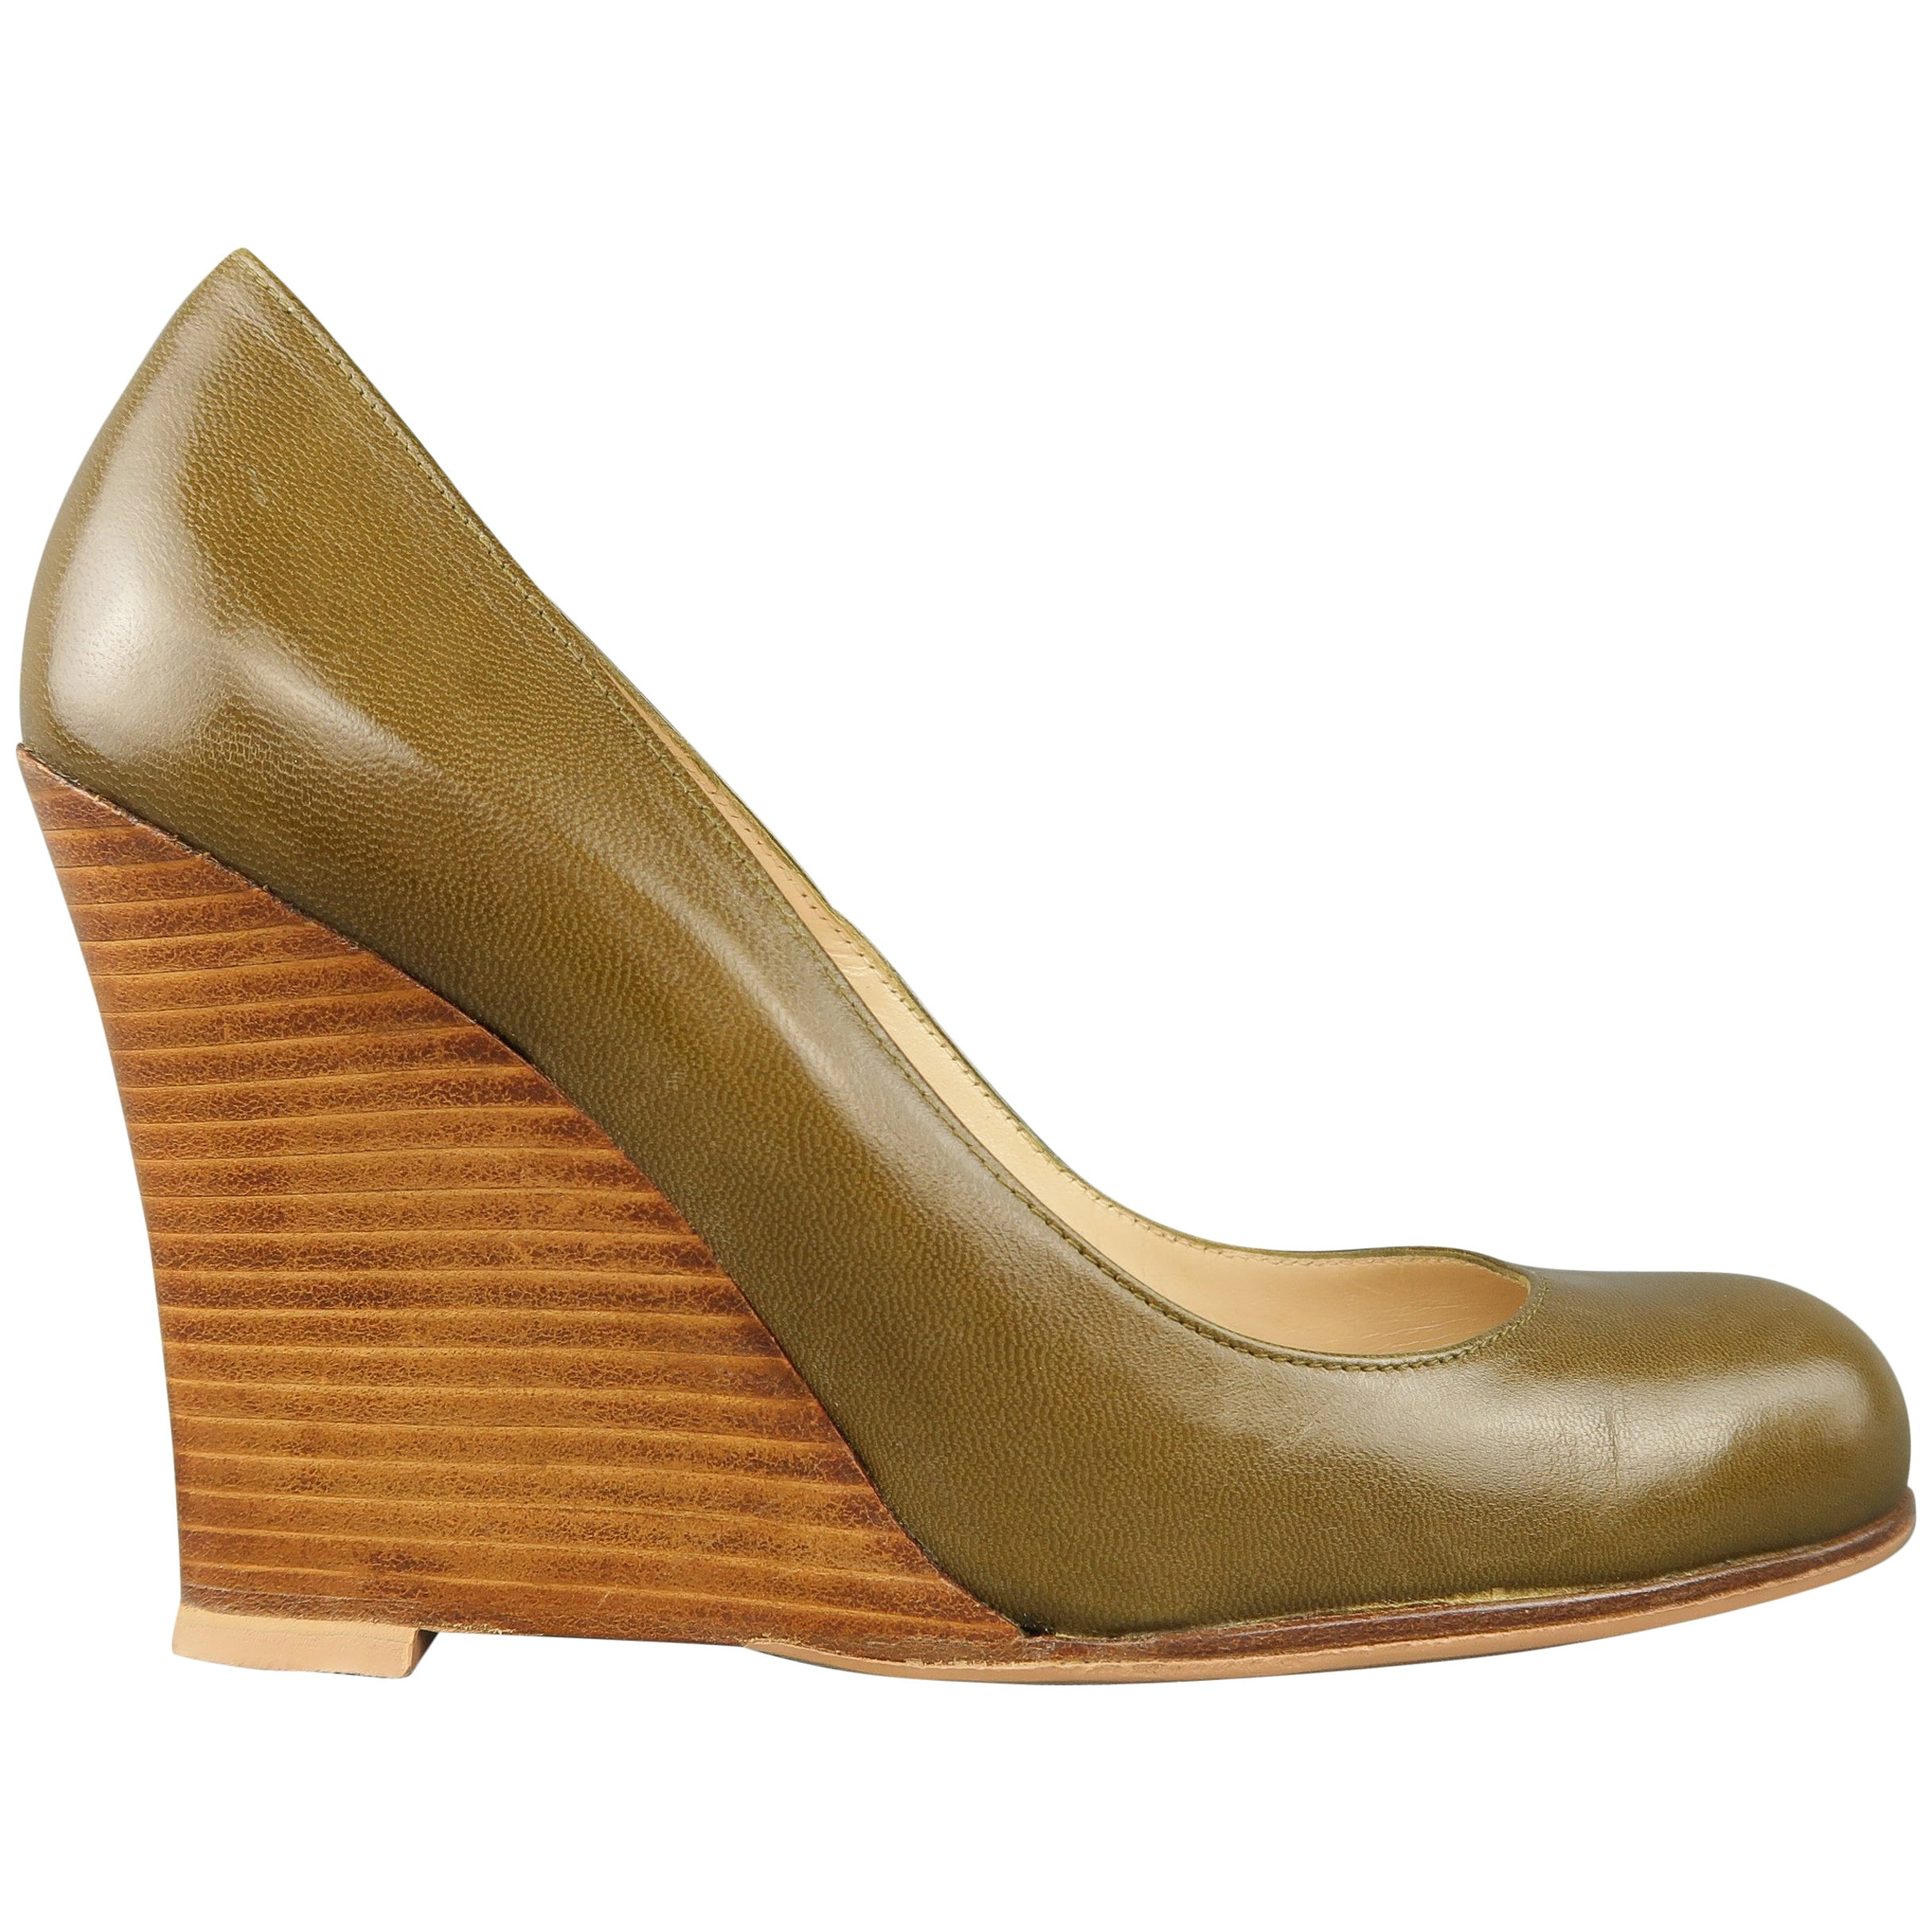 f6ddc4ba415 Christian Louboutin Olive Green Leather Stacked Wedge Pumps